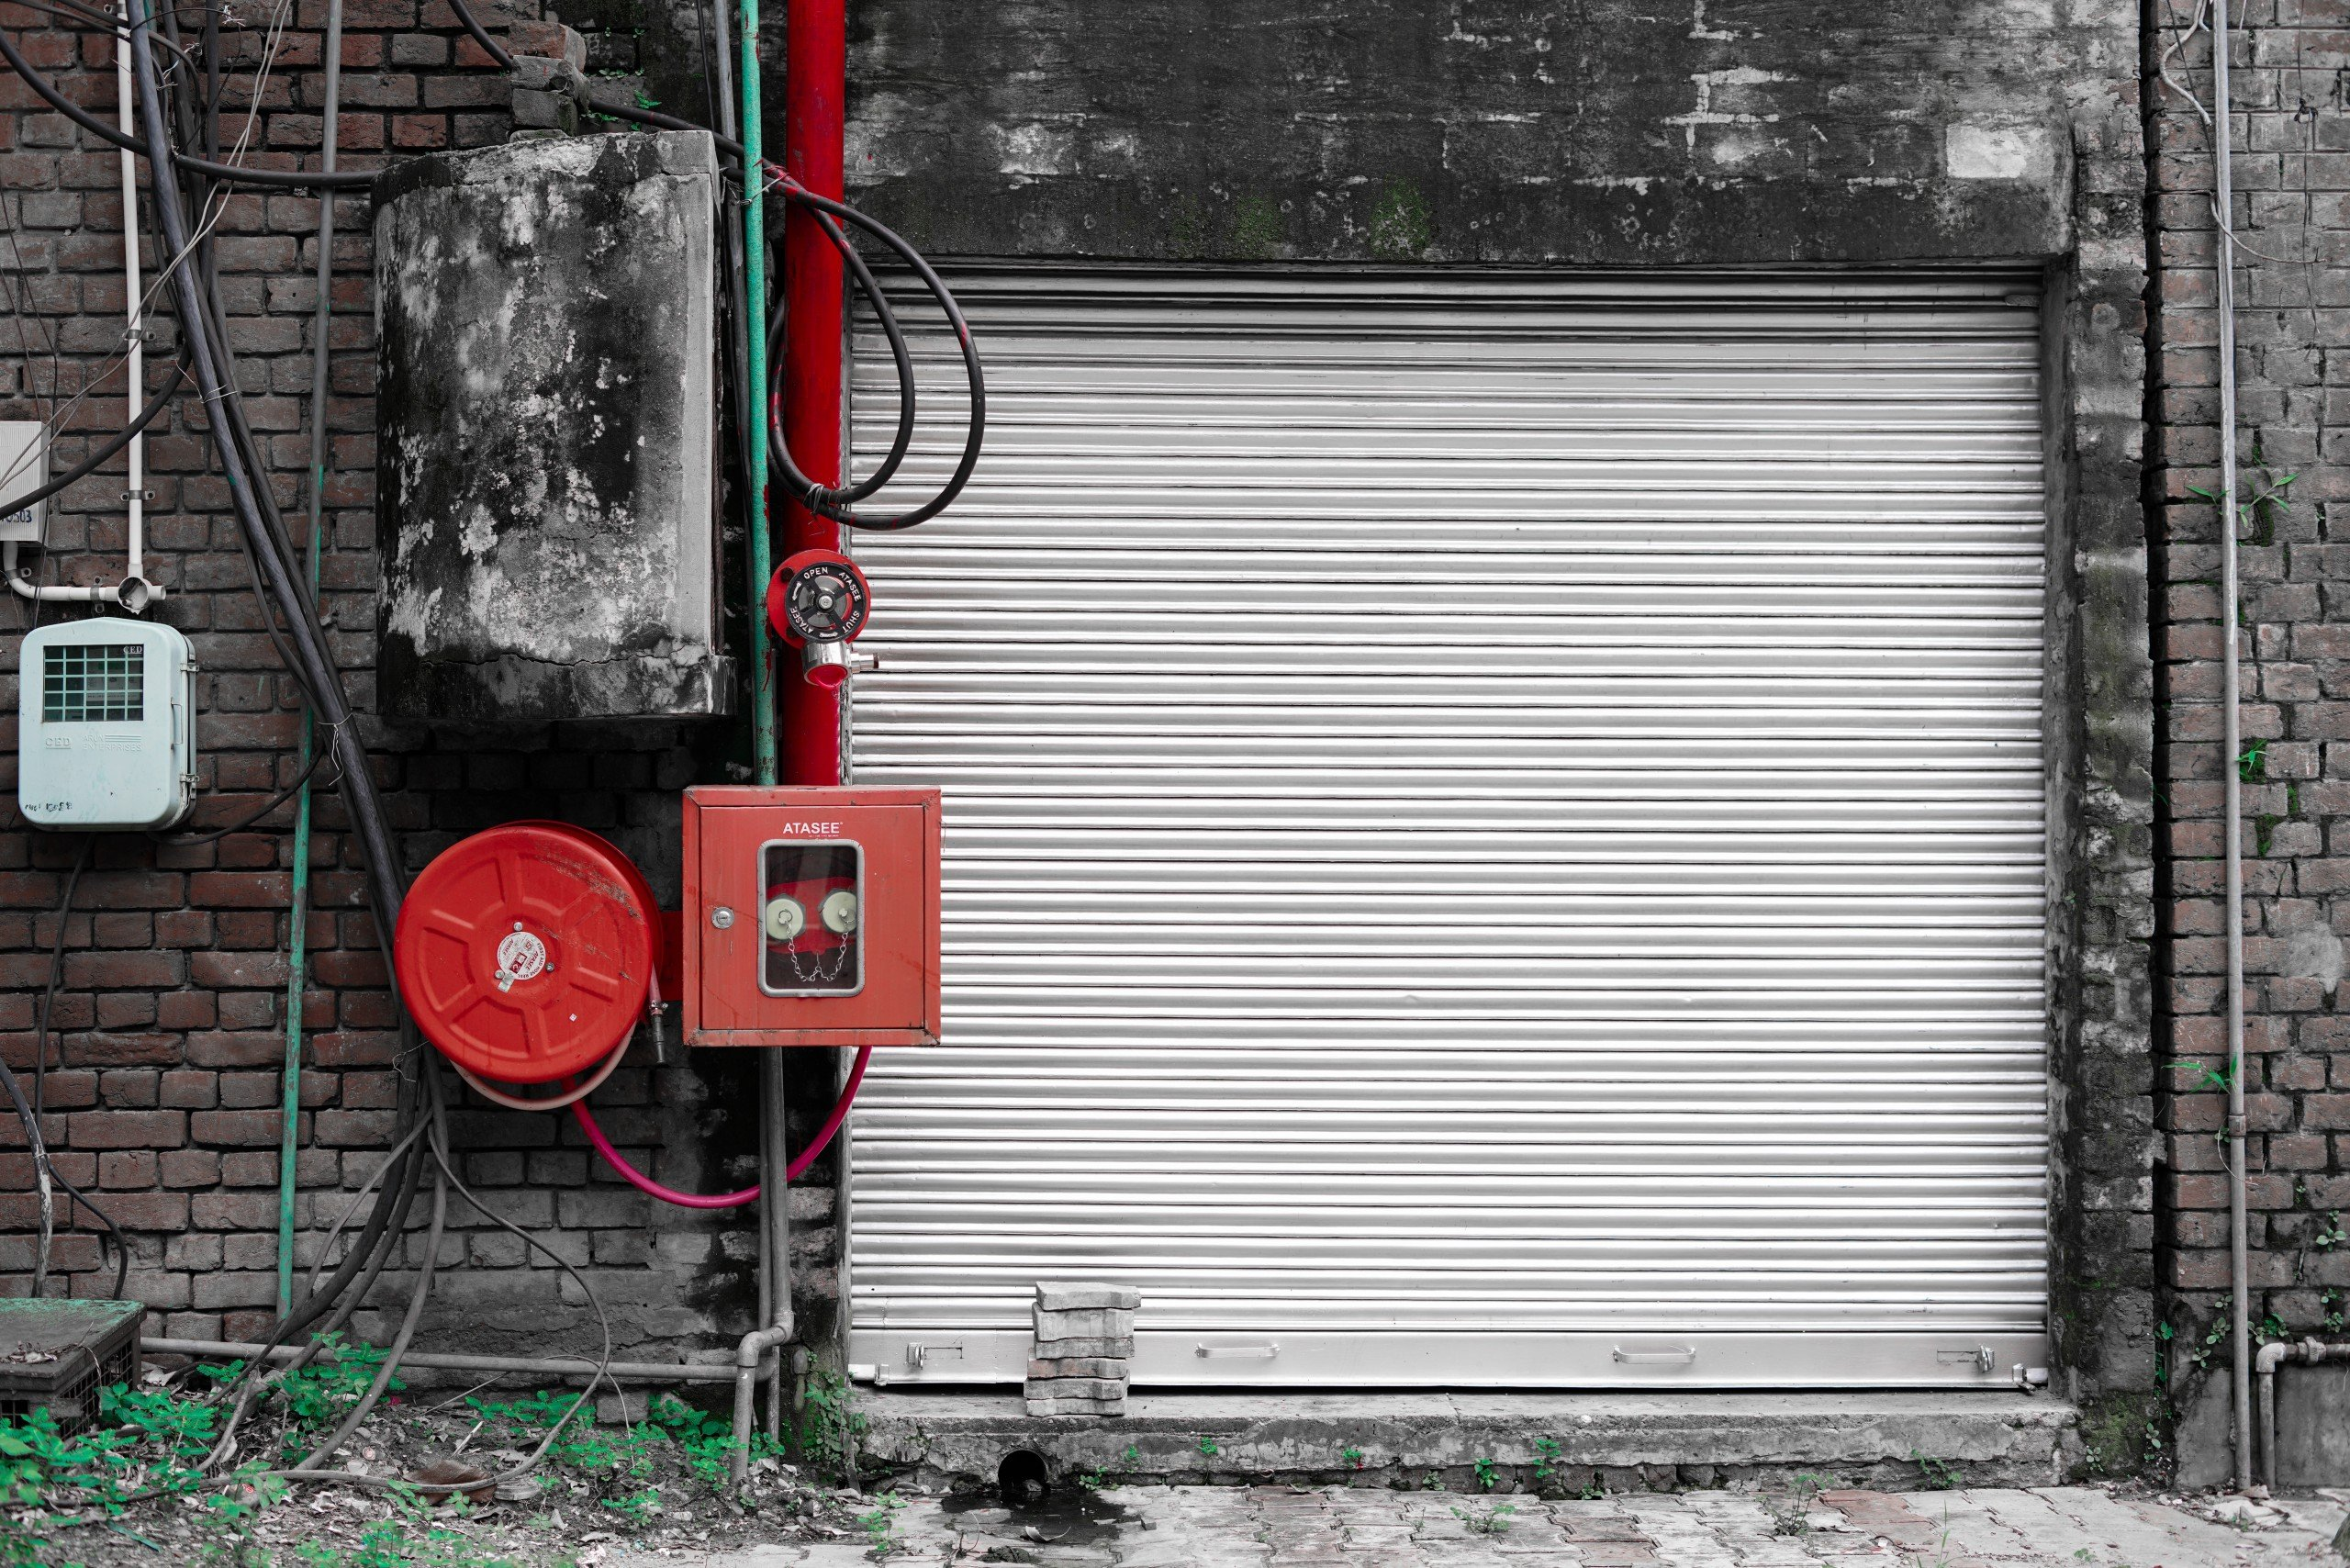 A Shuttered Shop With Fire Box